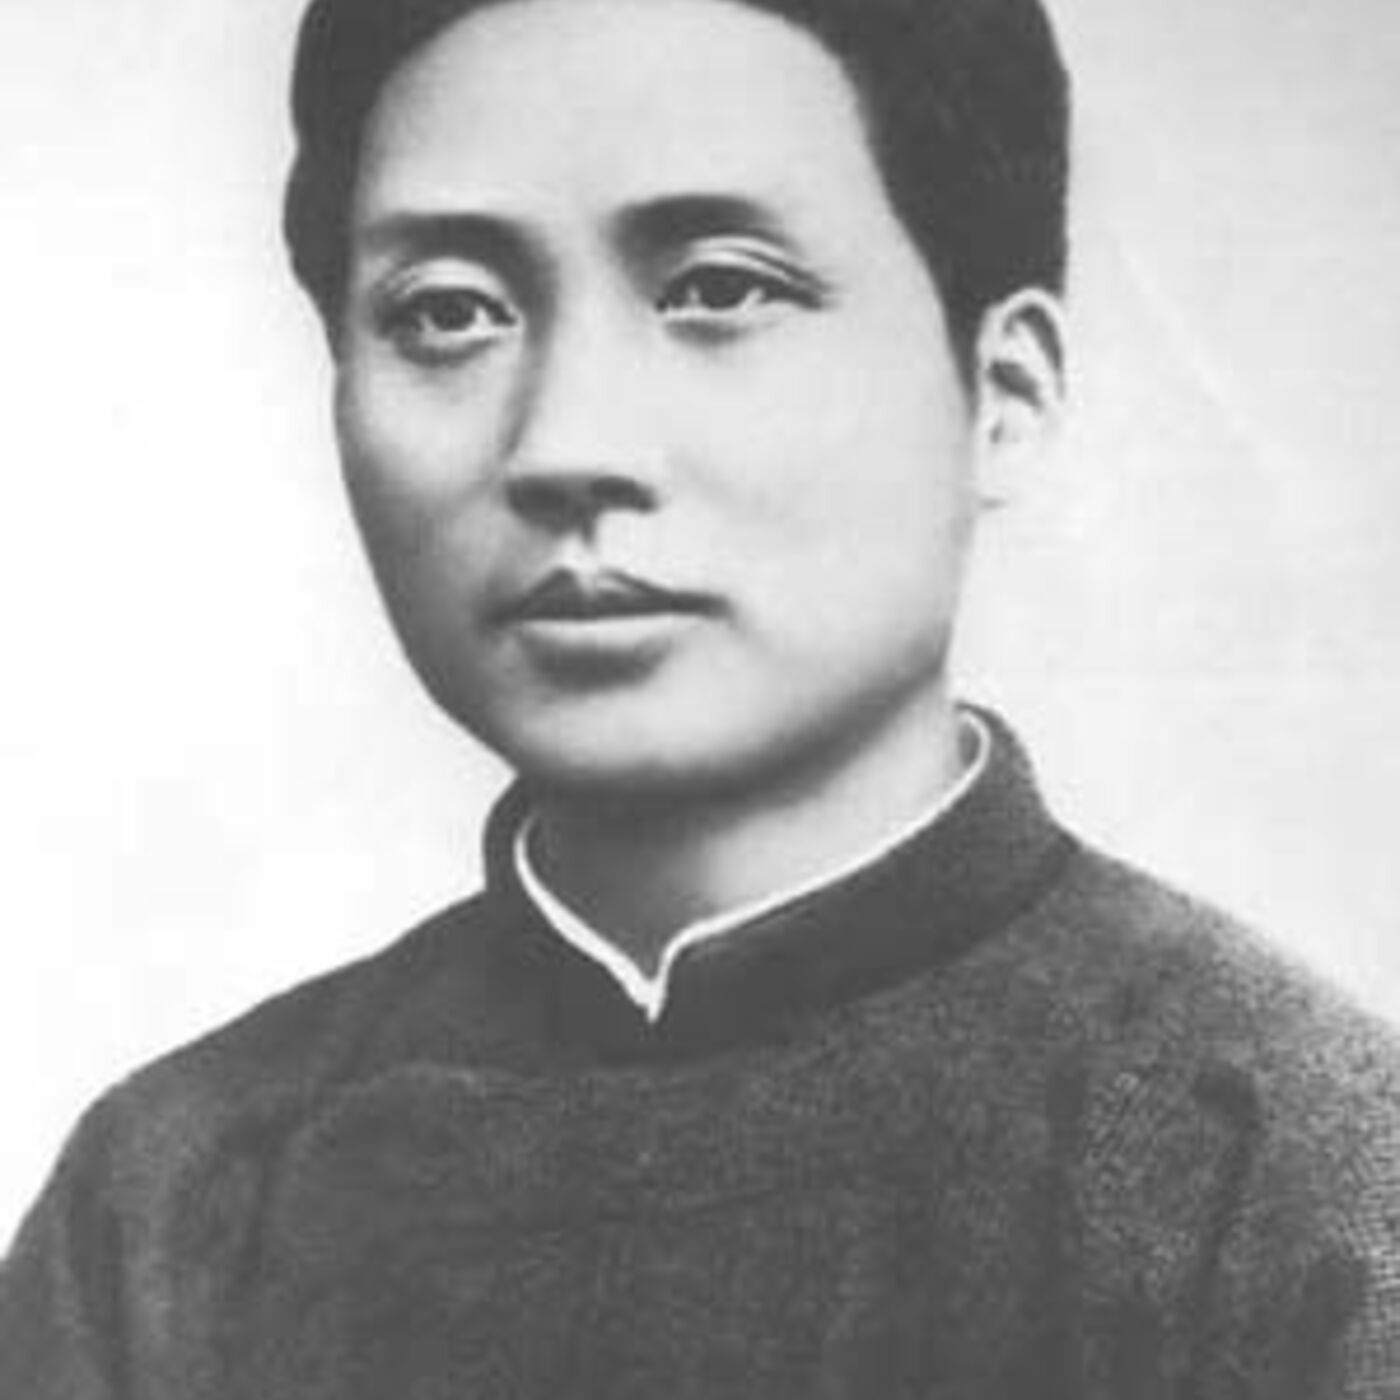 Propaganda, Criticism and Corruption: Mao as Propagandist and Disciplinarian (October 1925 to early 1926)